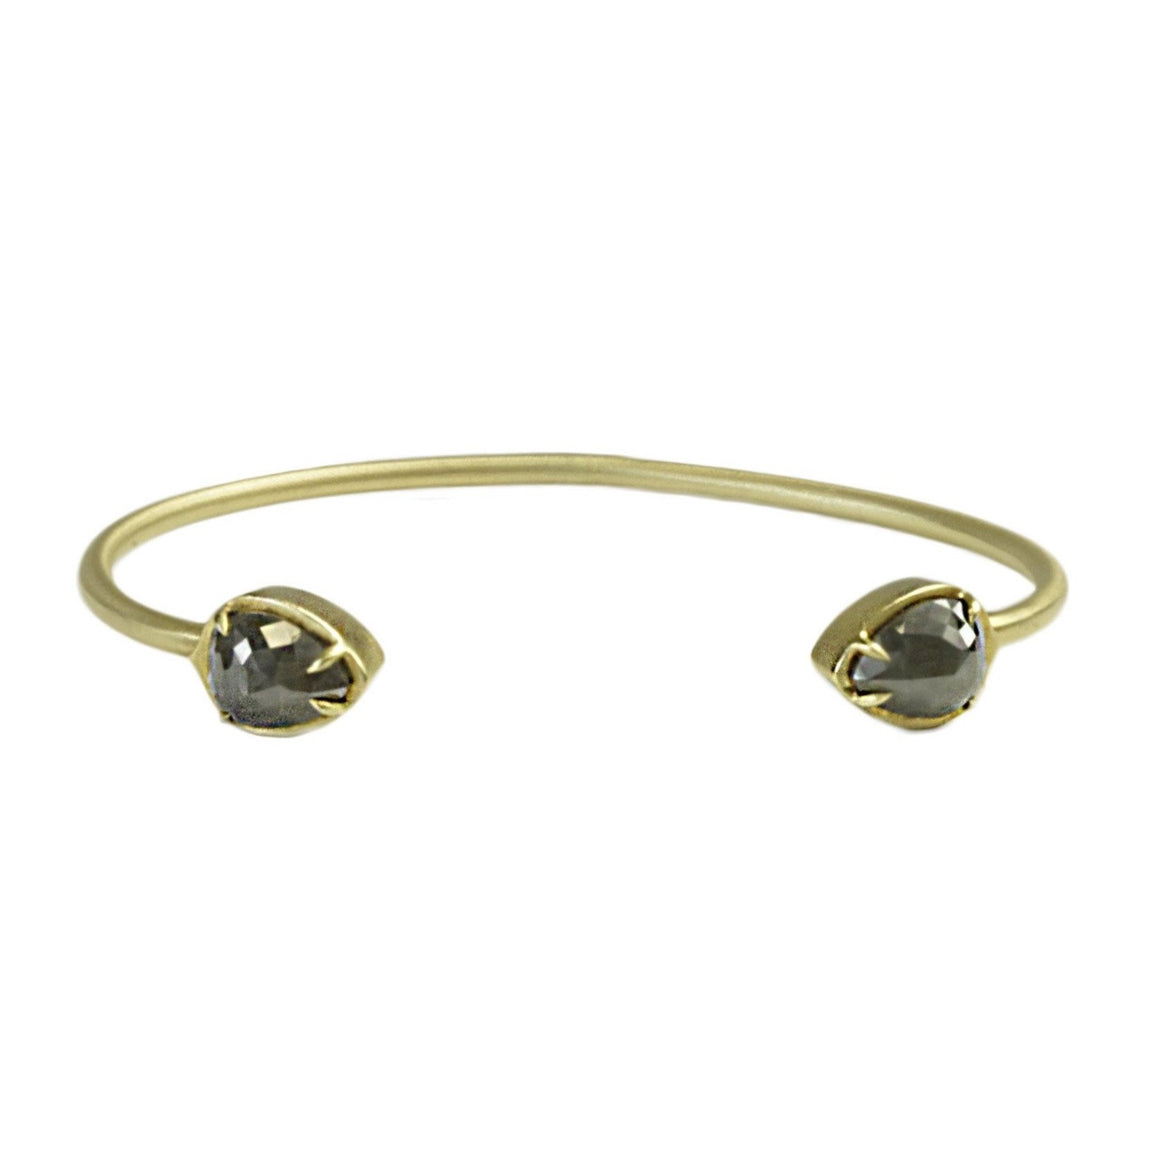 Pear Shaped Rough Diamond Cuff - Lesley Ann Jewels